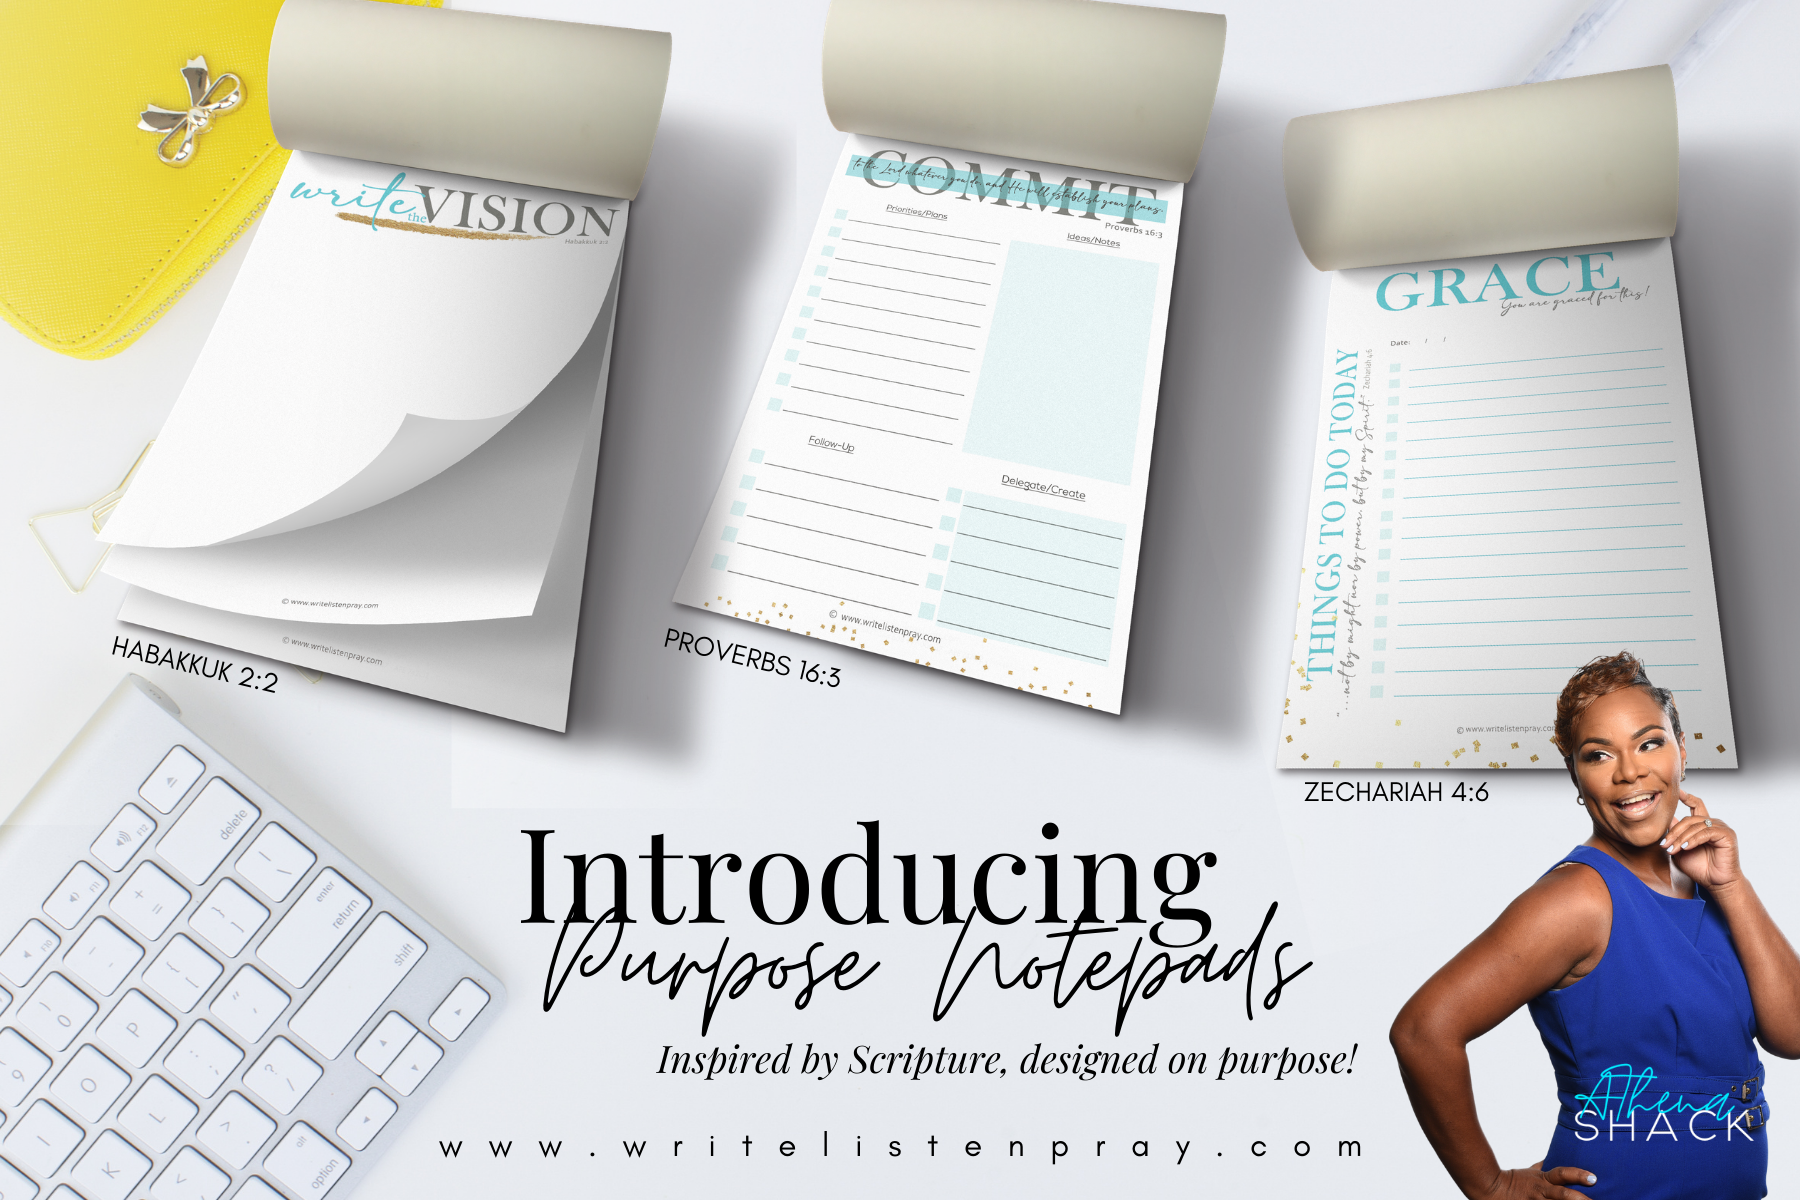 The Purpose Notepad Collection